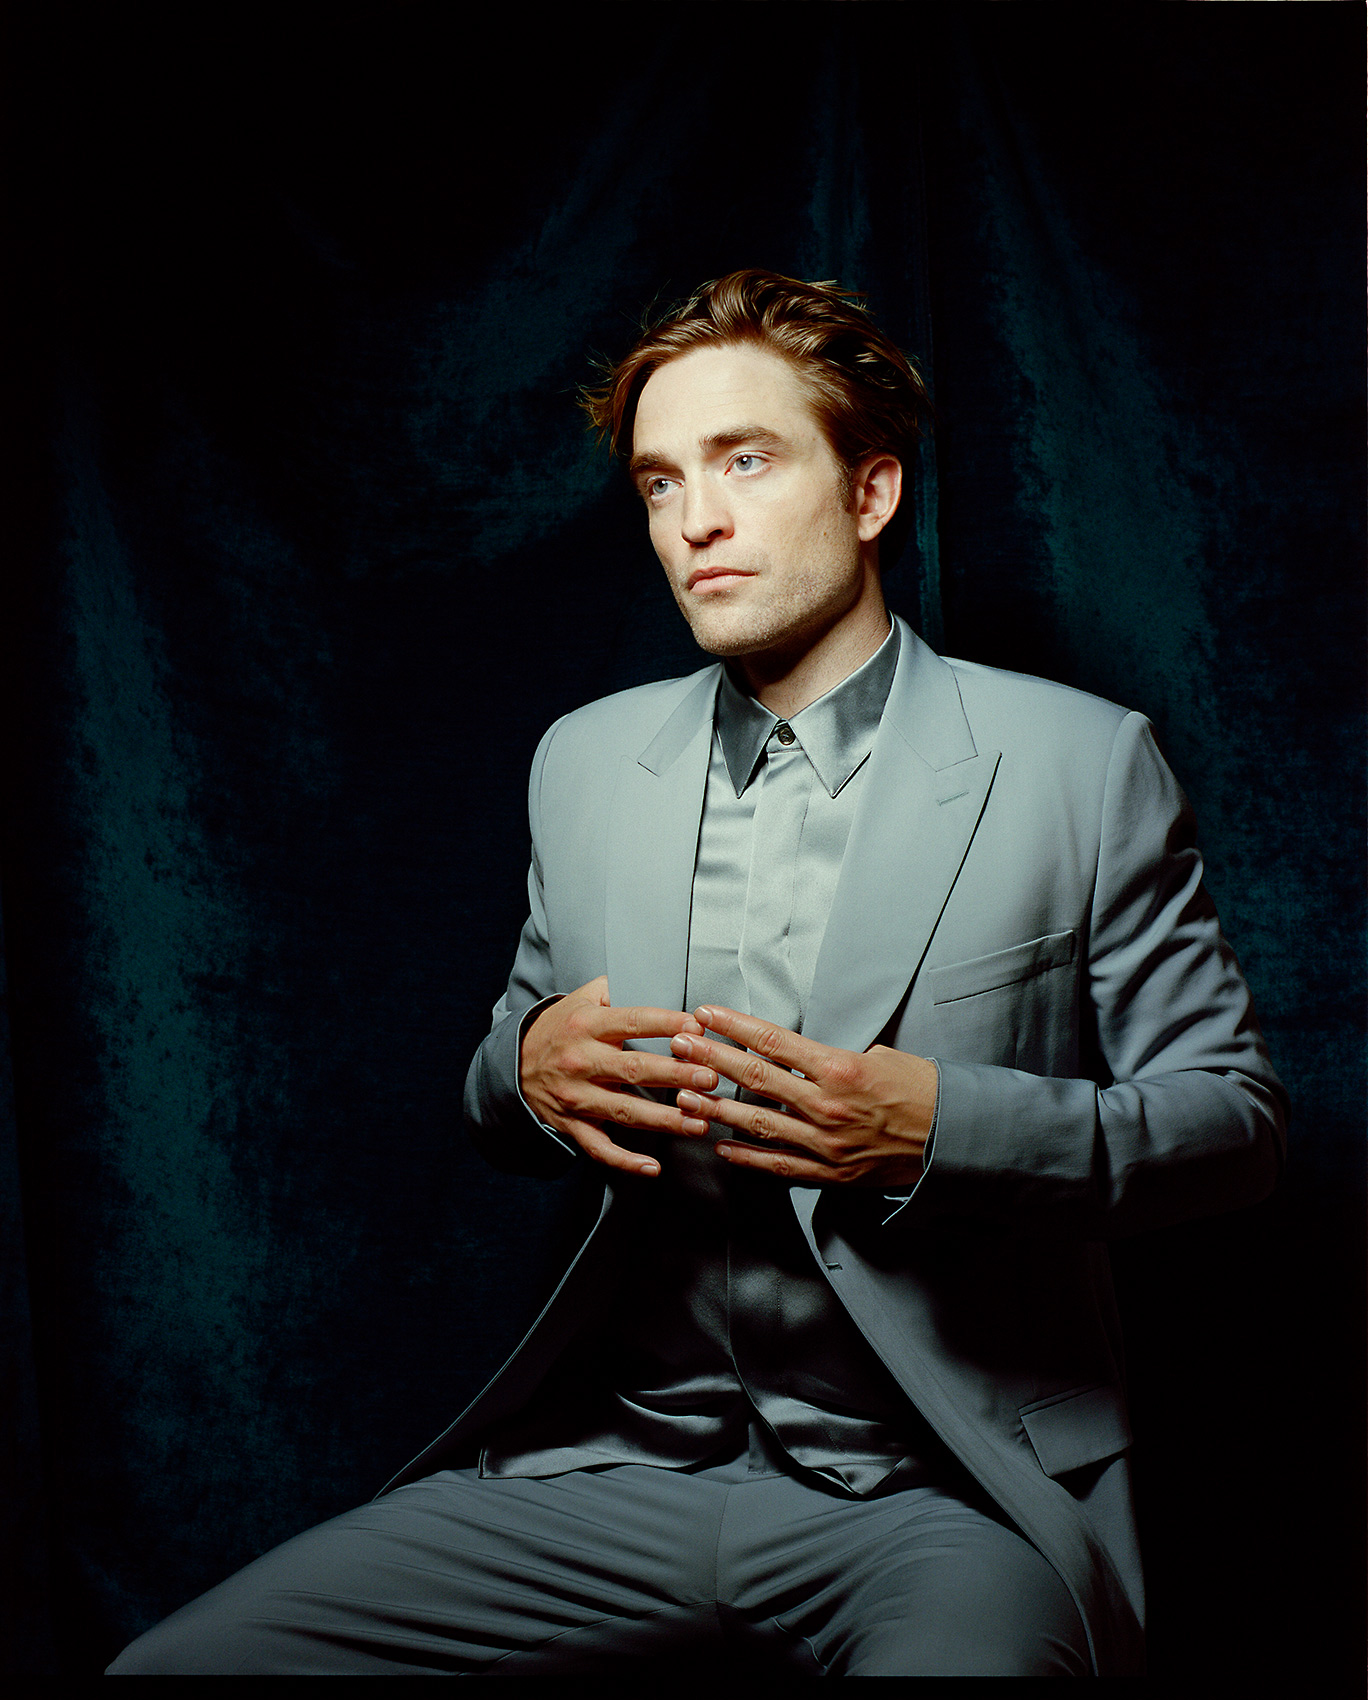 Rob Pattinson portrait against velvet